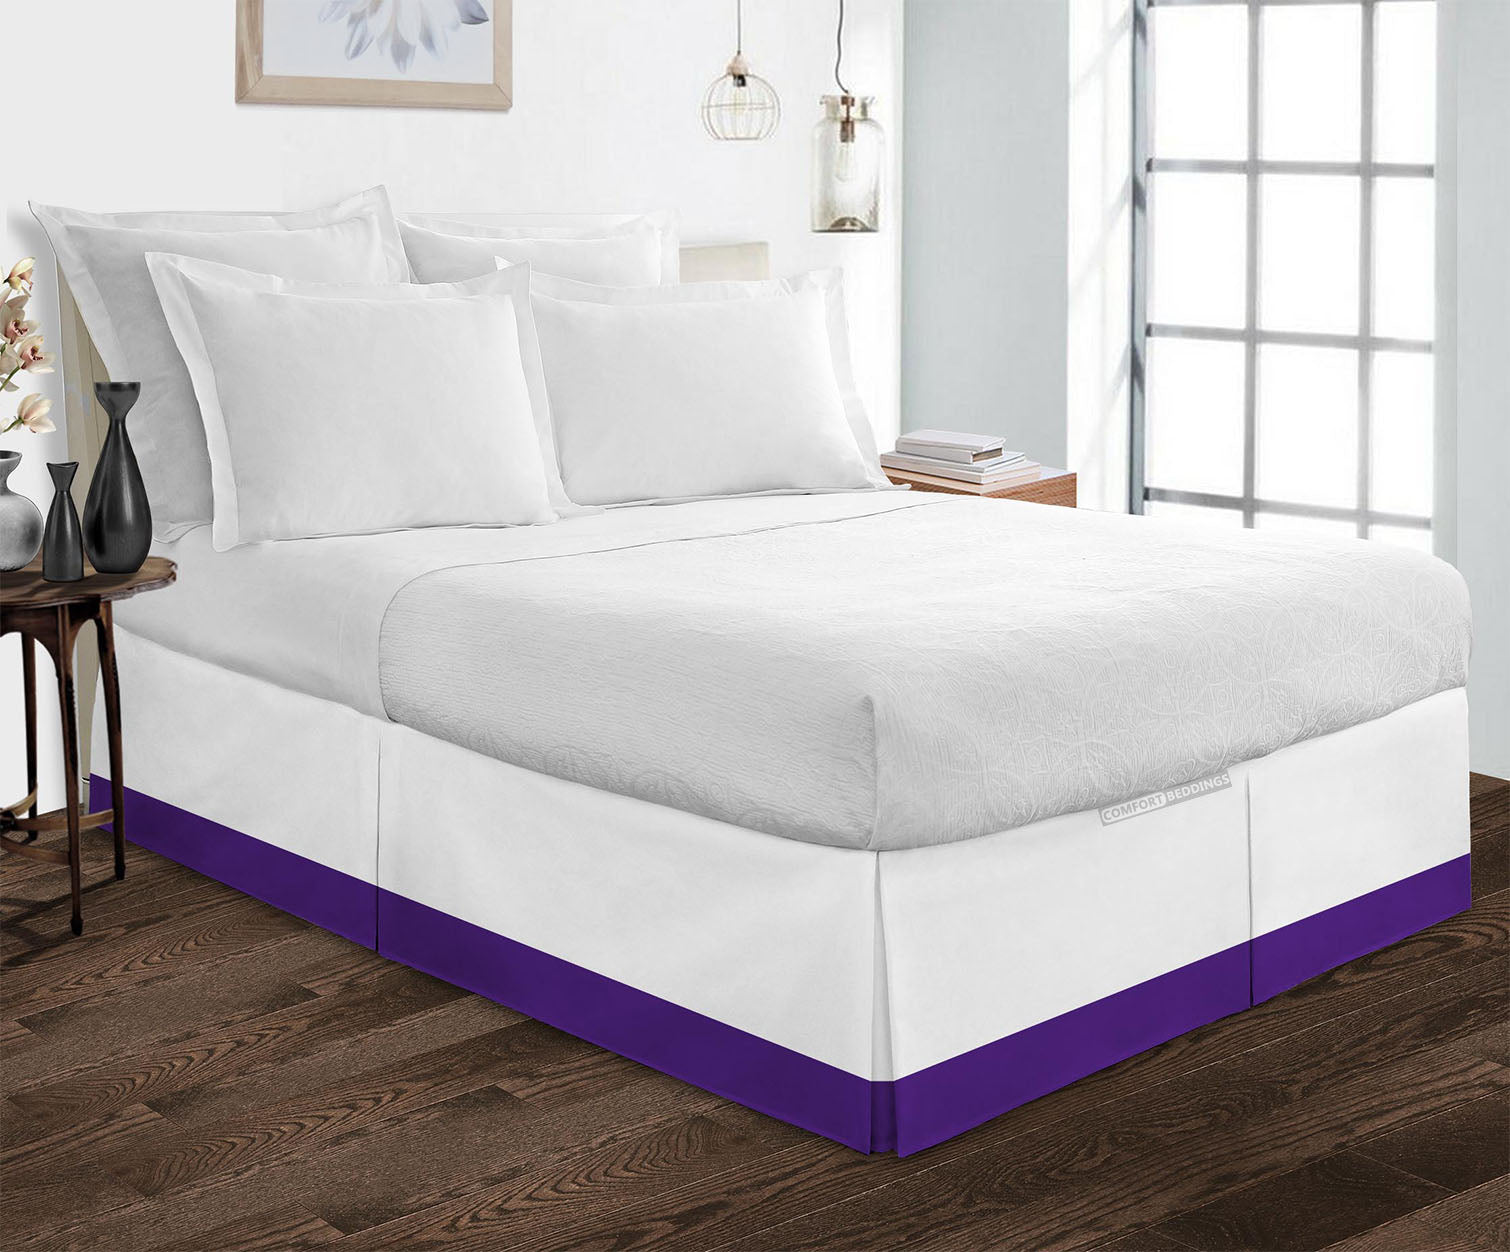 High Quality two tone Purple bed skirt